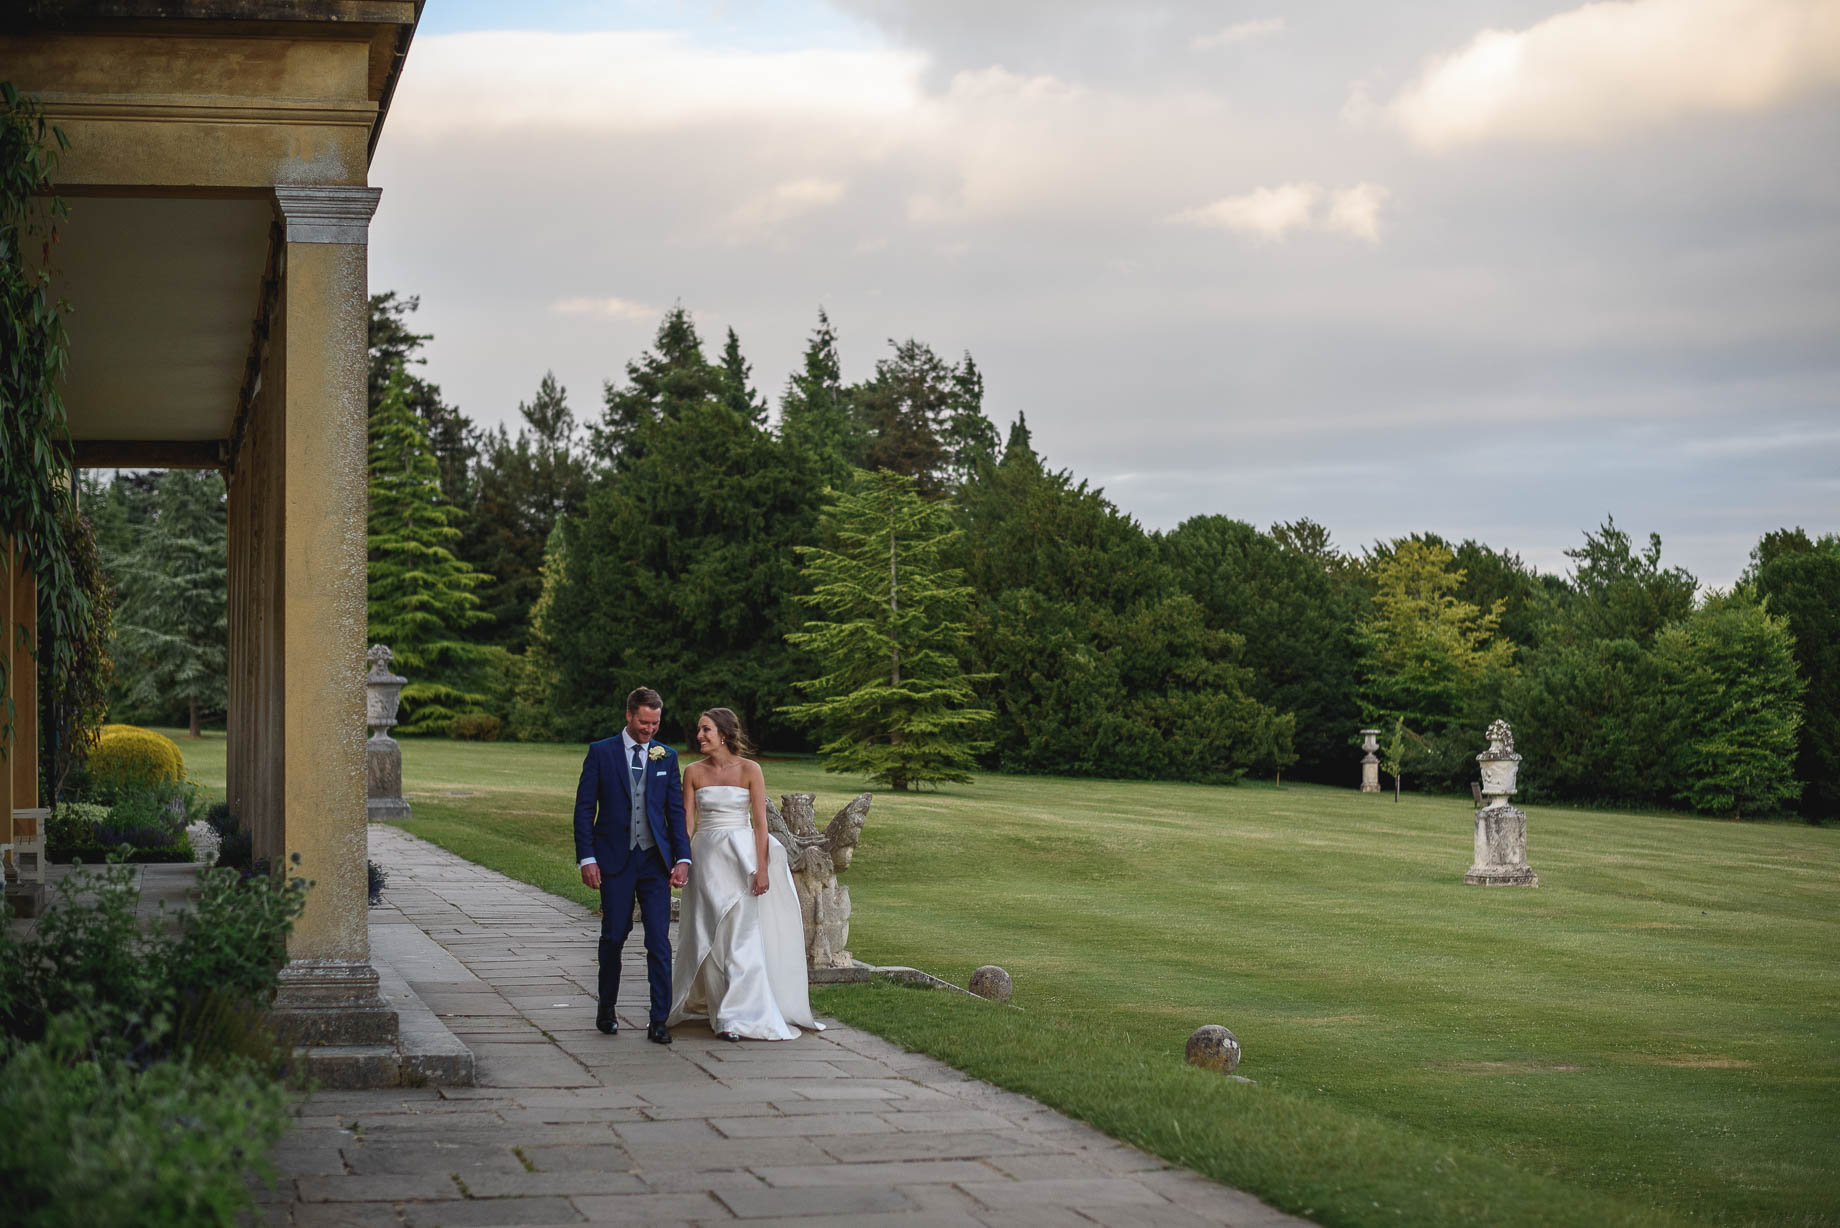 Surrey wedding photography by Guy Collier Photography - Laura + Alex